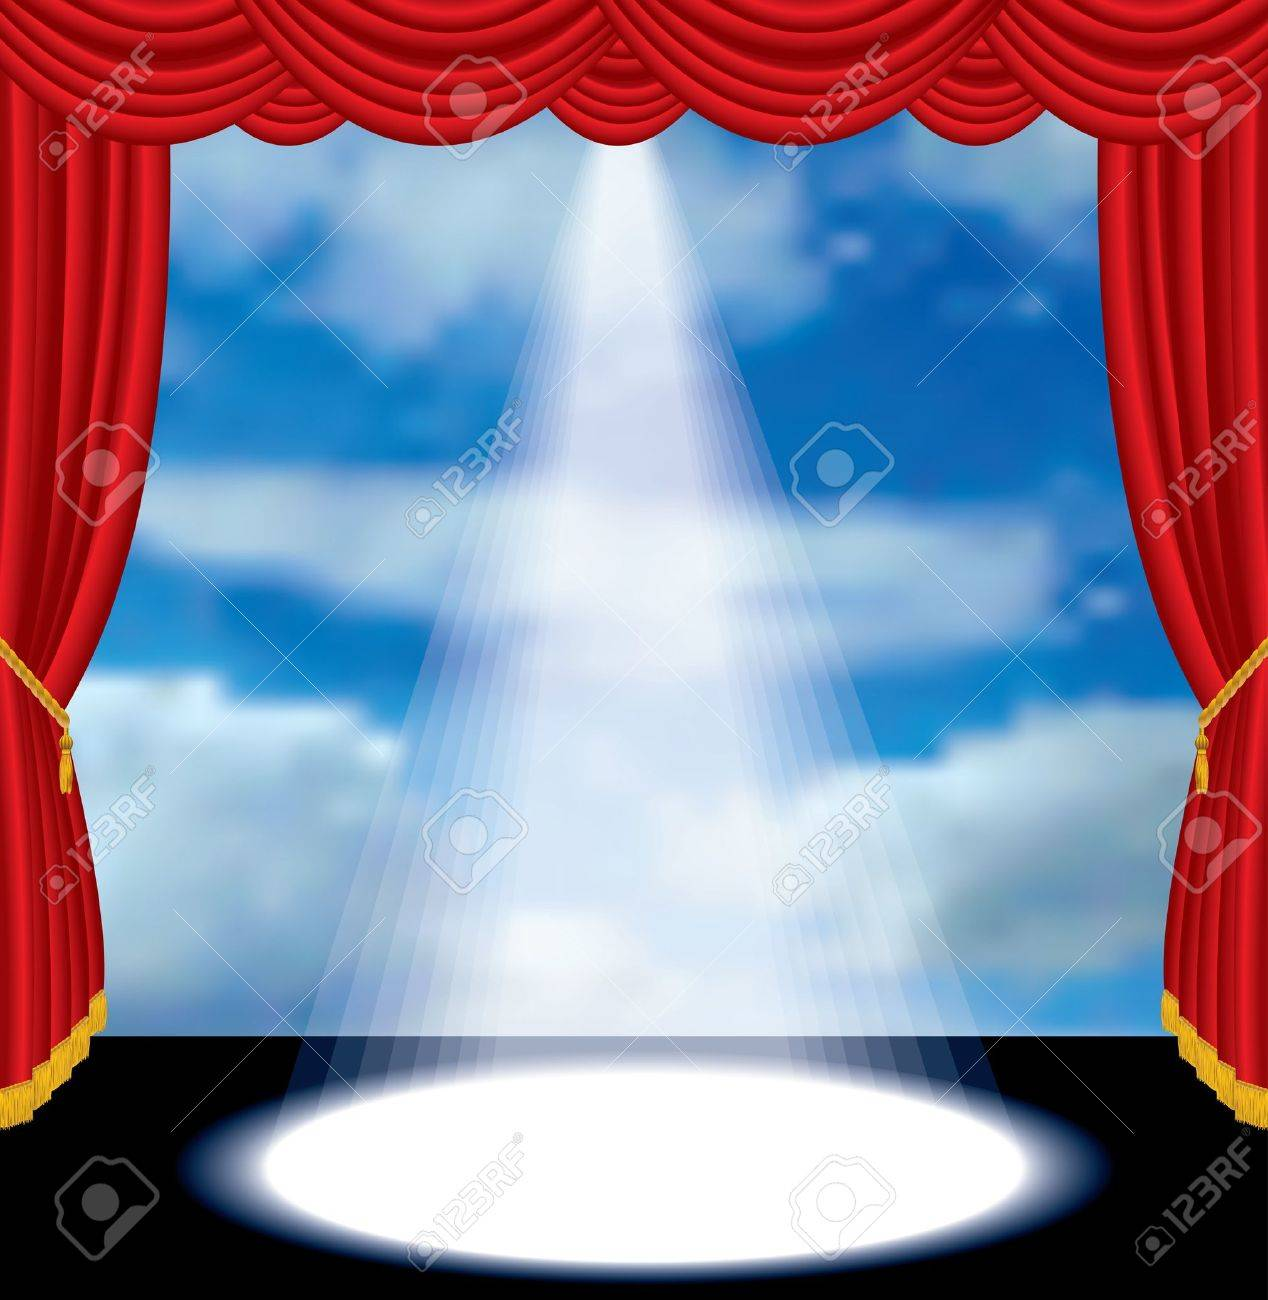 vector red curtain stage with cloudy sky Stock Vector - 10483575